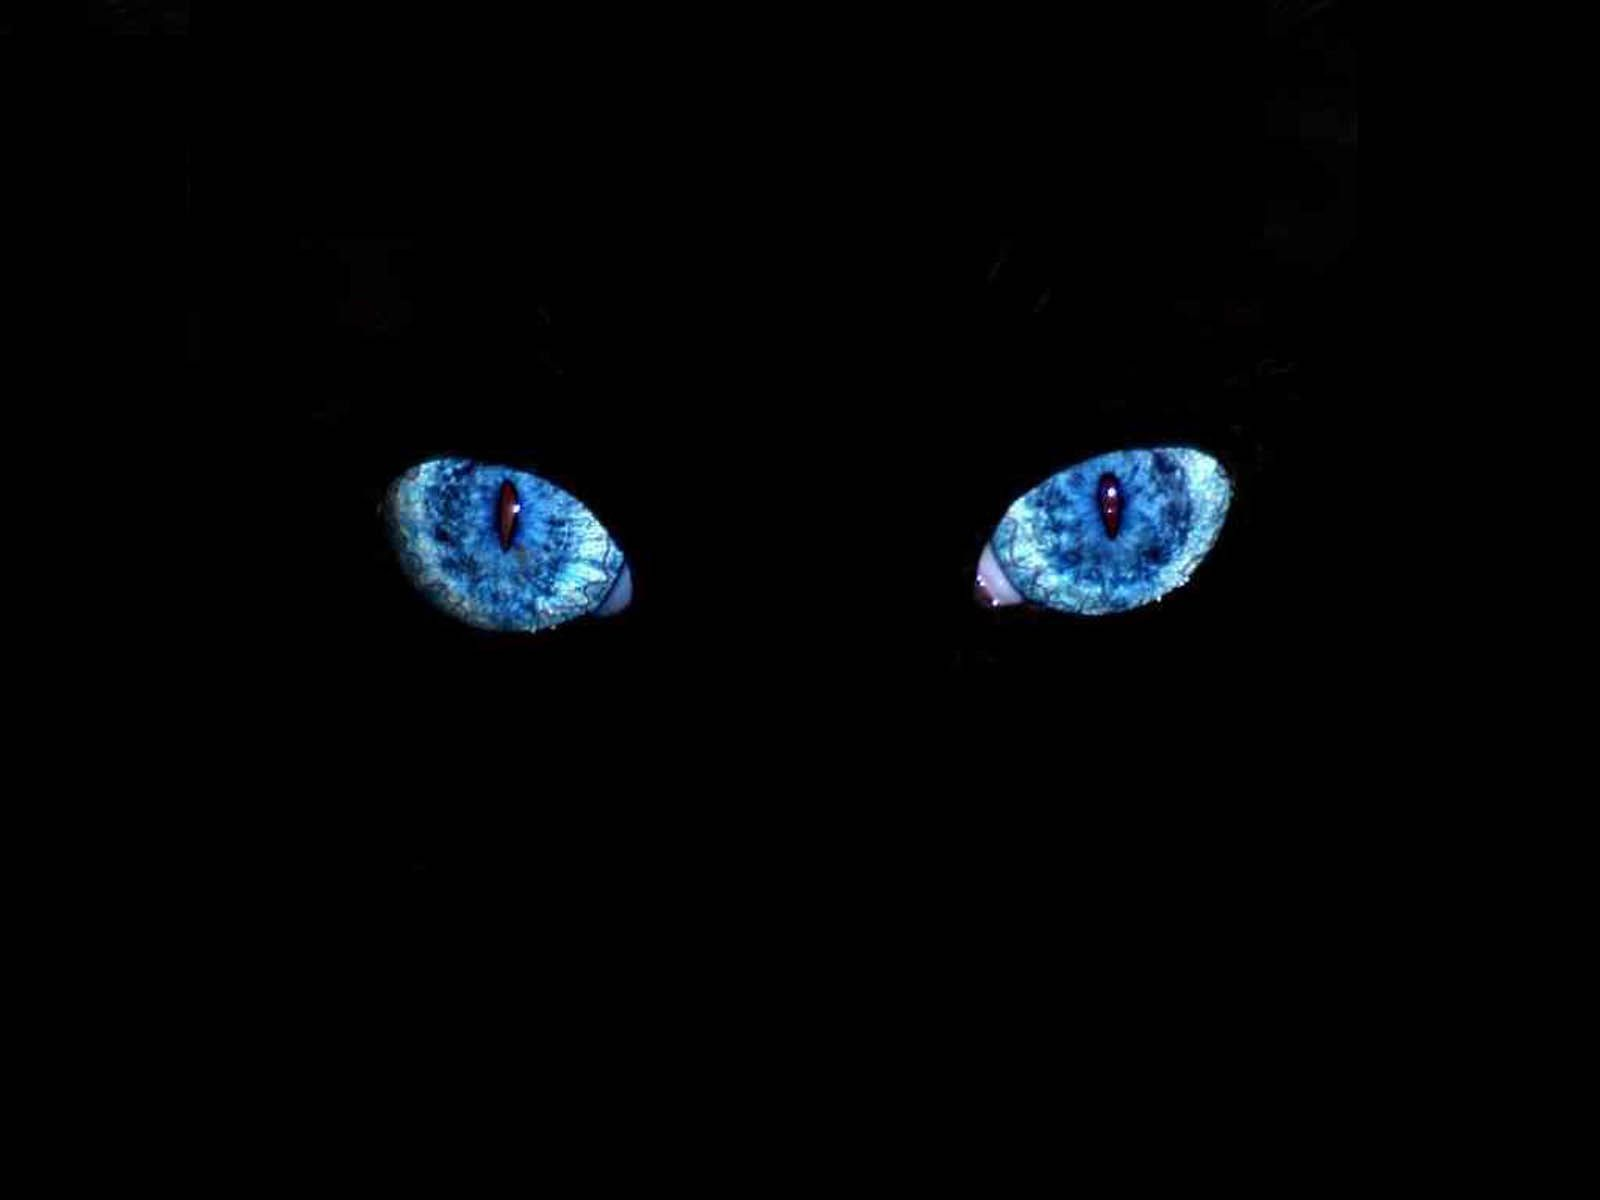 Hd Blue Eyes Wallpapers And Photos Hd Uncategorized Wallpapers 1280 1024 Blue Eyes Wallpapers 46 Wallpa Eyes Wallpaper Cat With Blue Eyes Black Cat Halloween